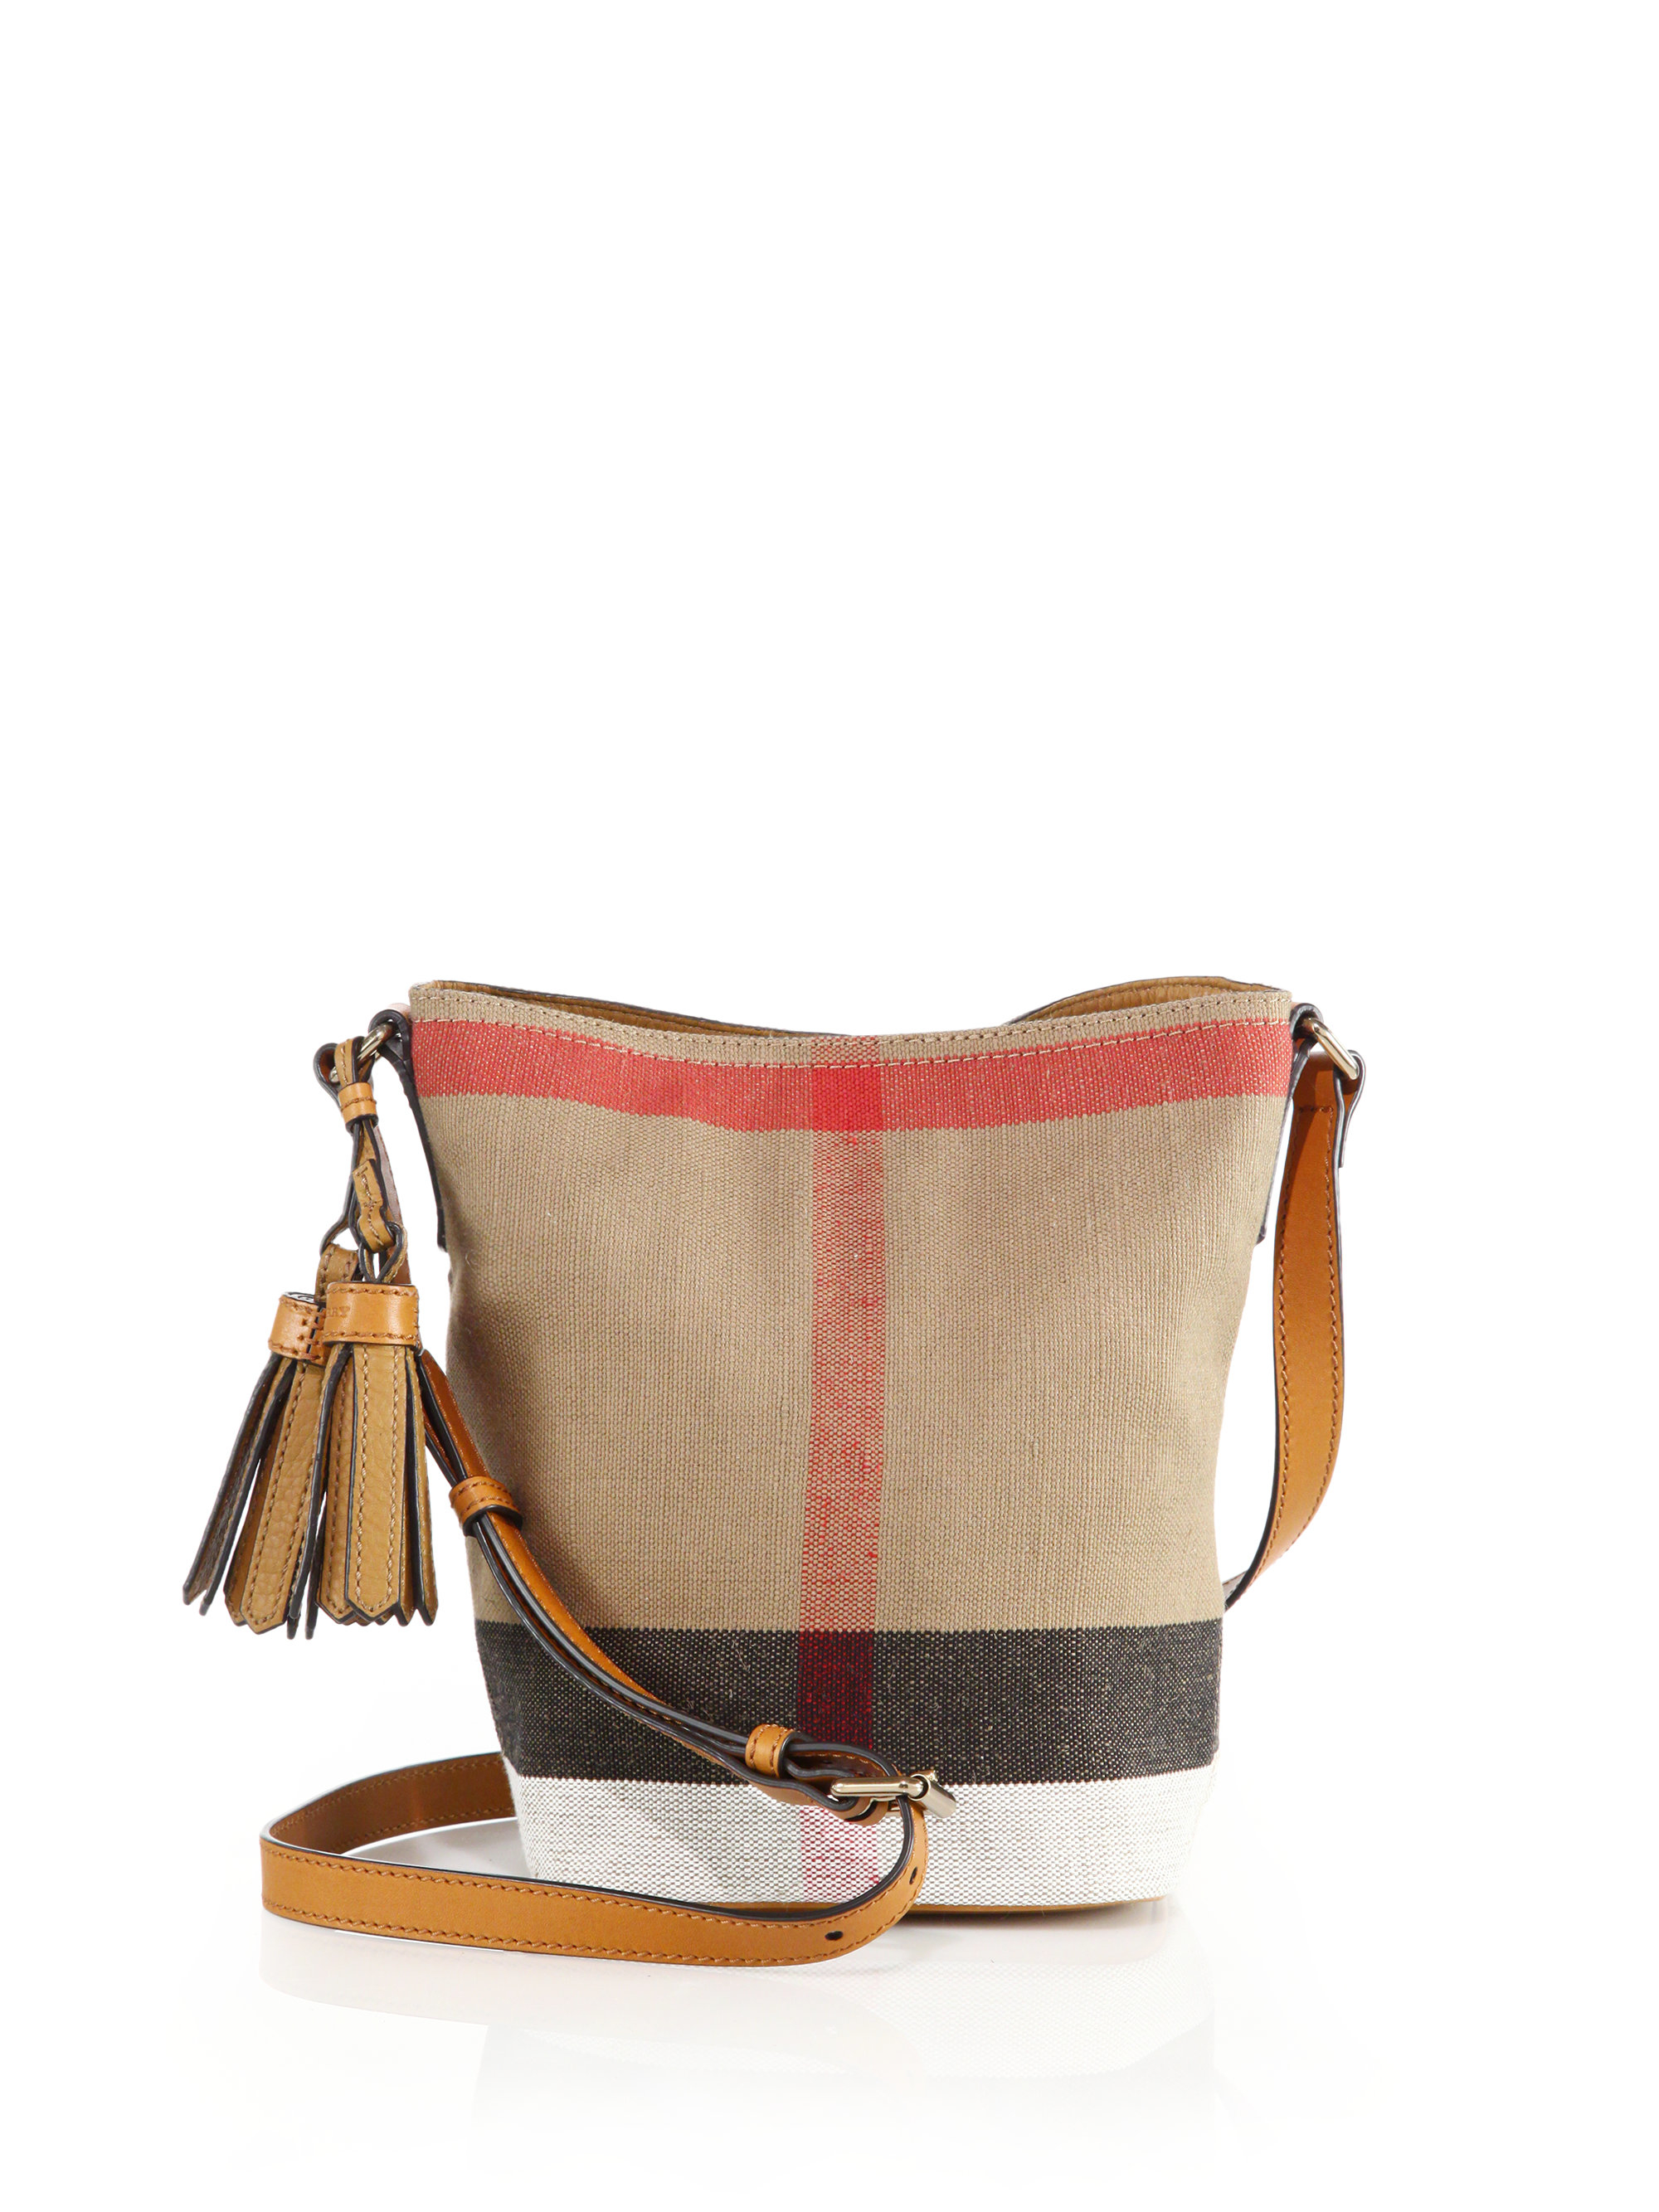 3379932f372a Lyst - Burberry Ashby Small Canvas Check   Leather Crossbody Bag in ...